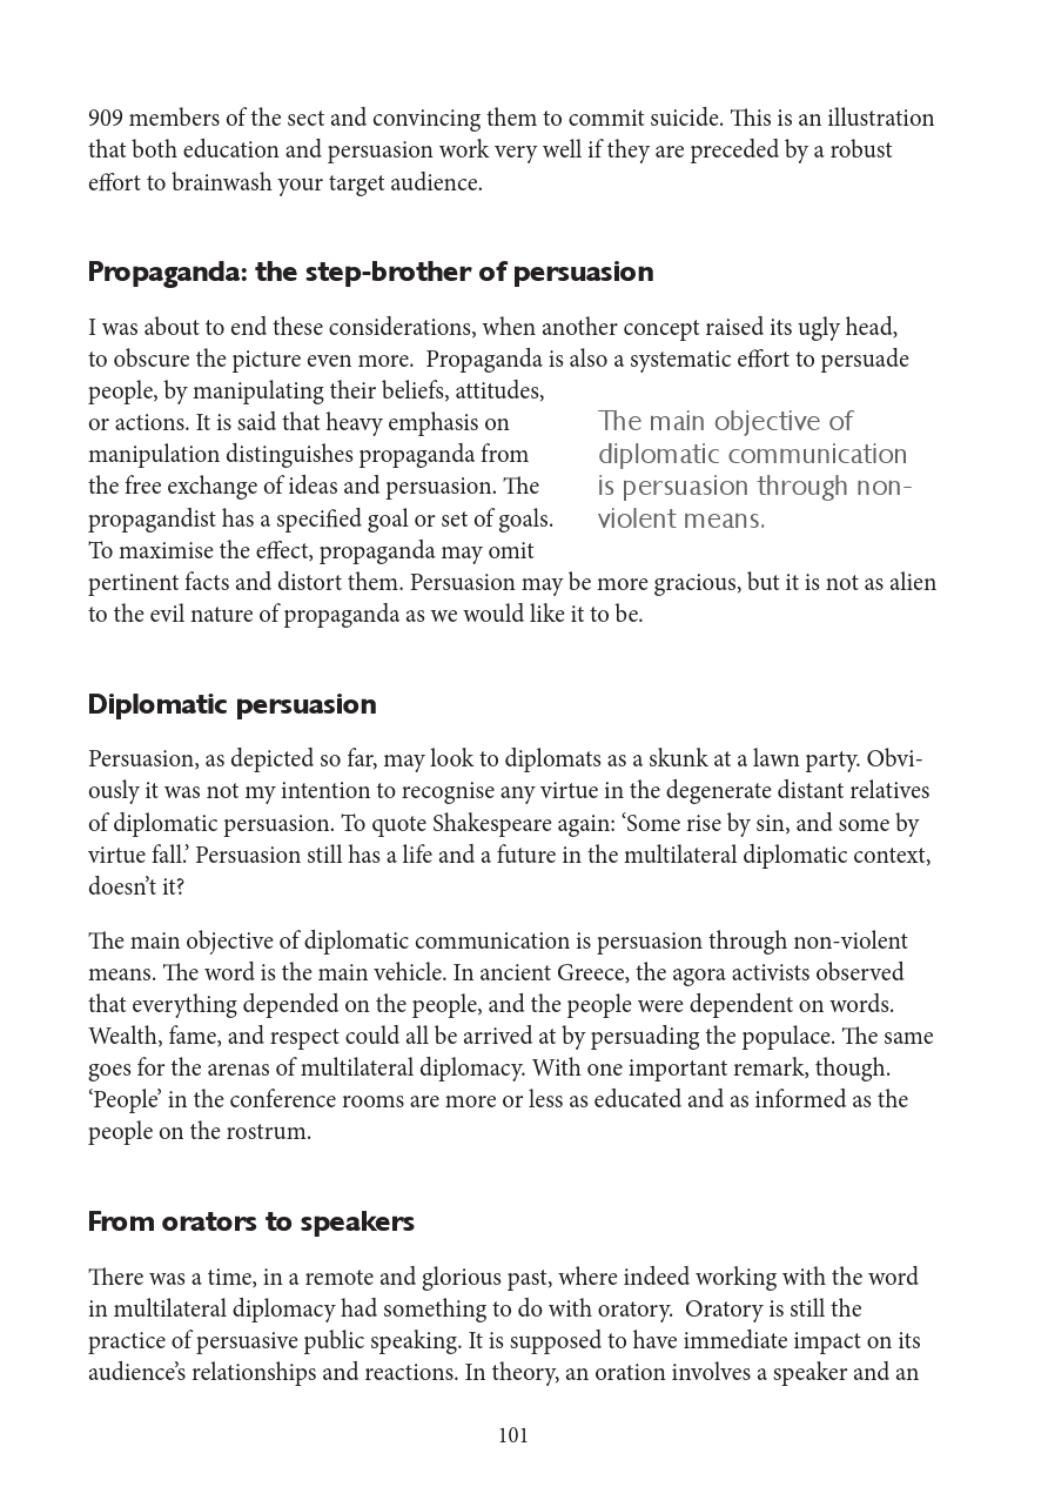 Persuasion, the essence of diplomacy by DiploFoundation - issuu